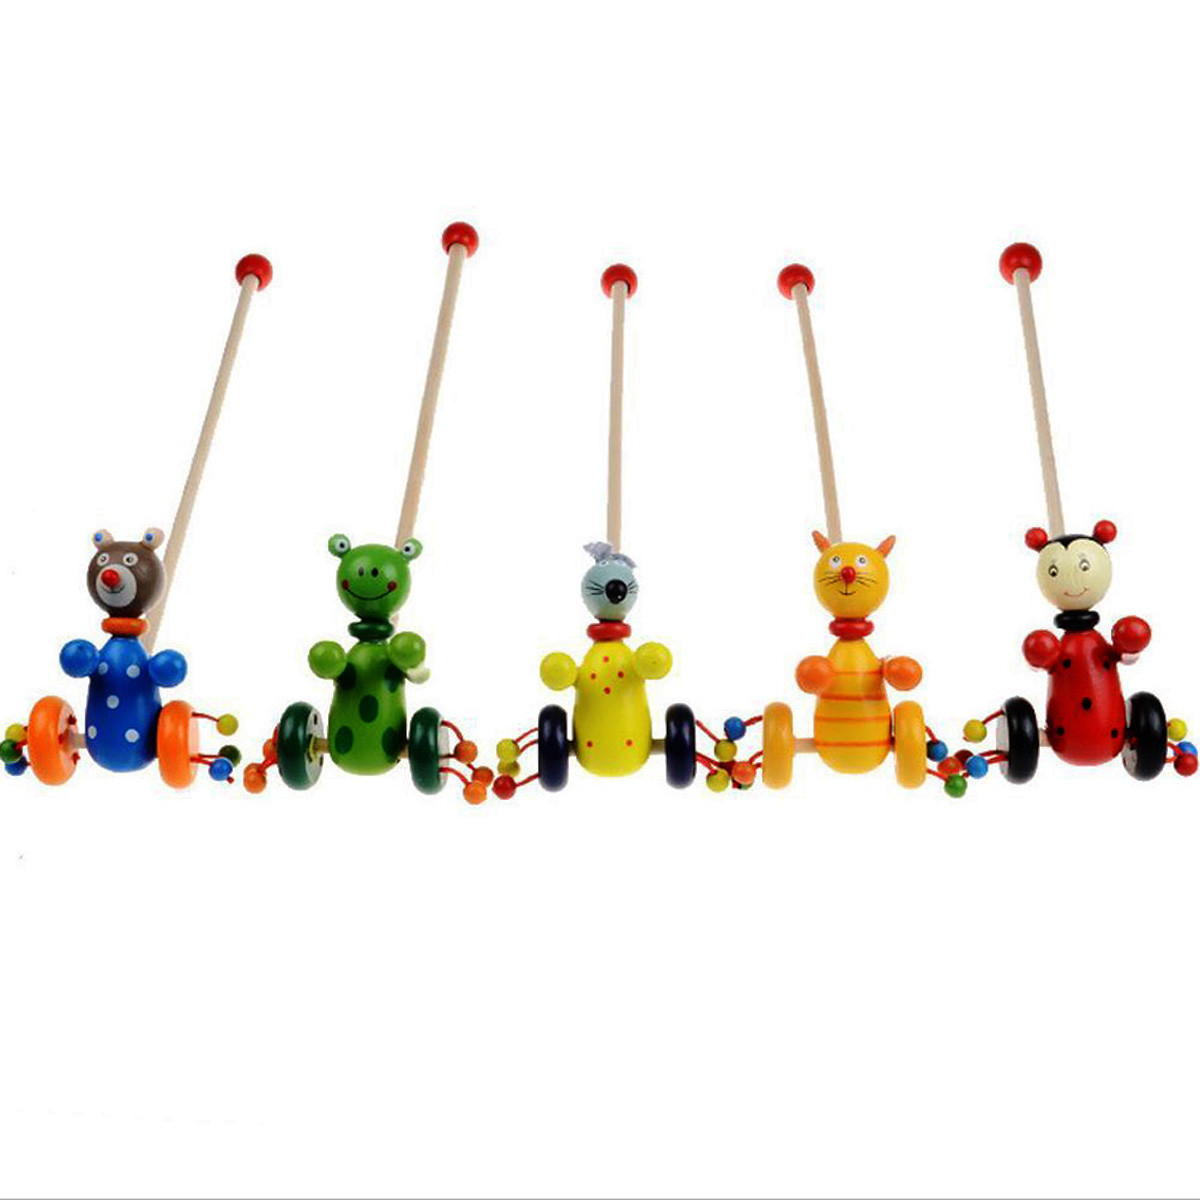 Baby & Toddler Toys 2018 Hot Style Diy Interactive Animal Toddler Baby Toys For Childern Animals Push Cart Wooden Blocks Trolley Toy Educational Kid